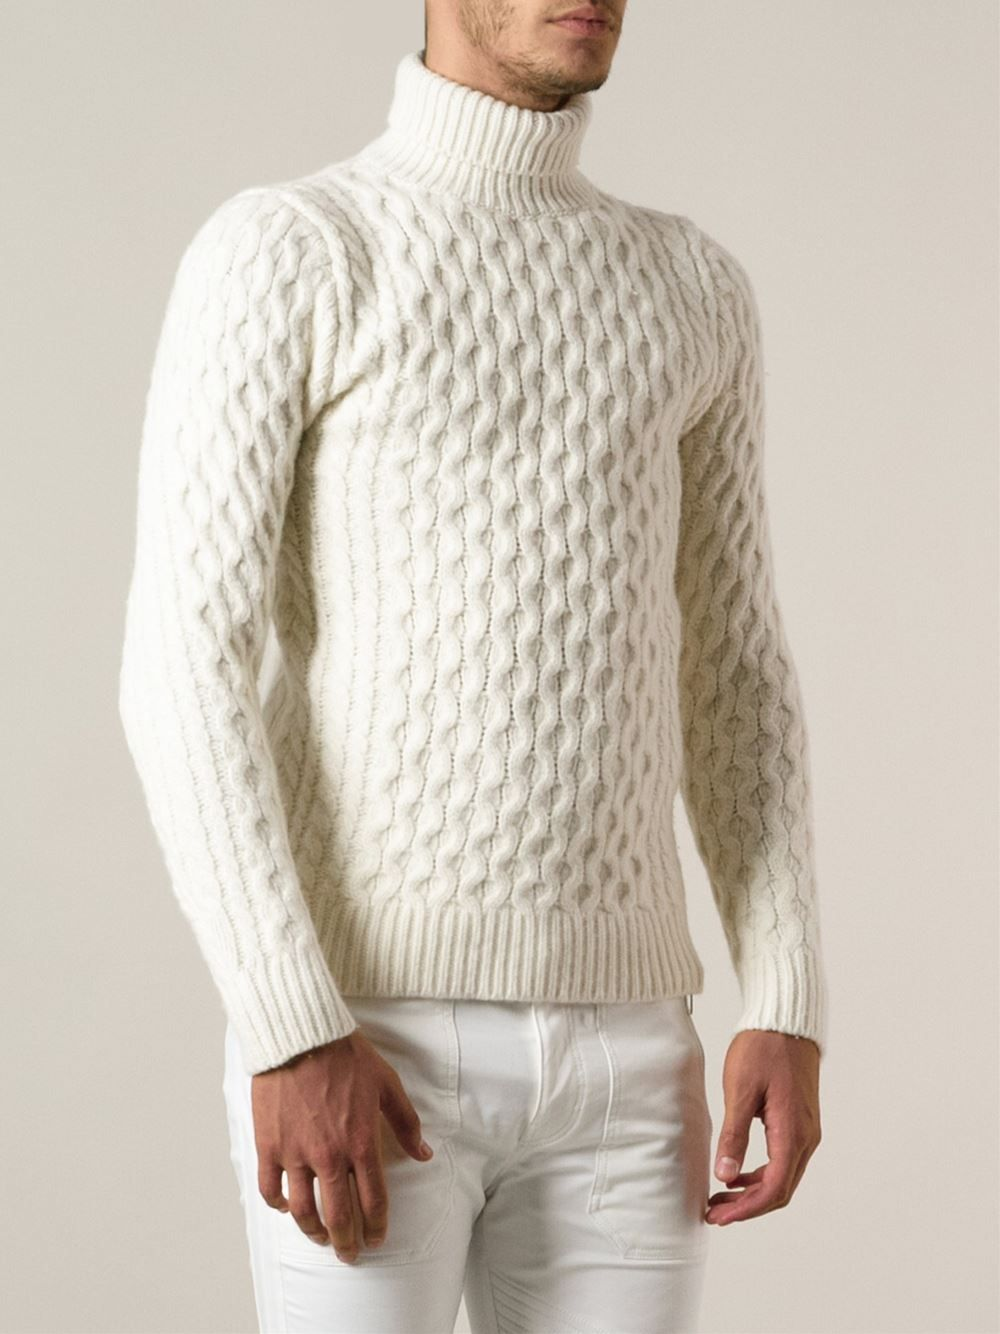 Polo Neck, Knitting Designs, Cable Knit, Turtle Neck, Men s Knitwear, White f1a5e0c11c62